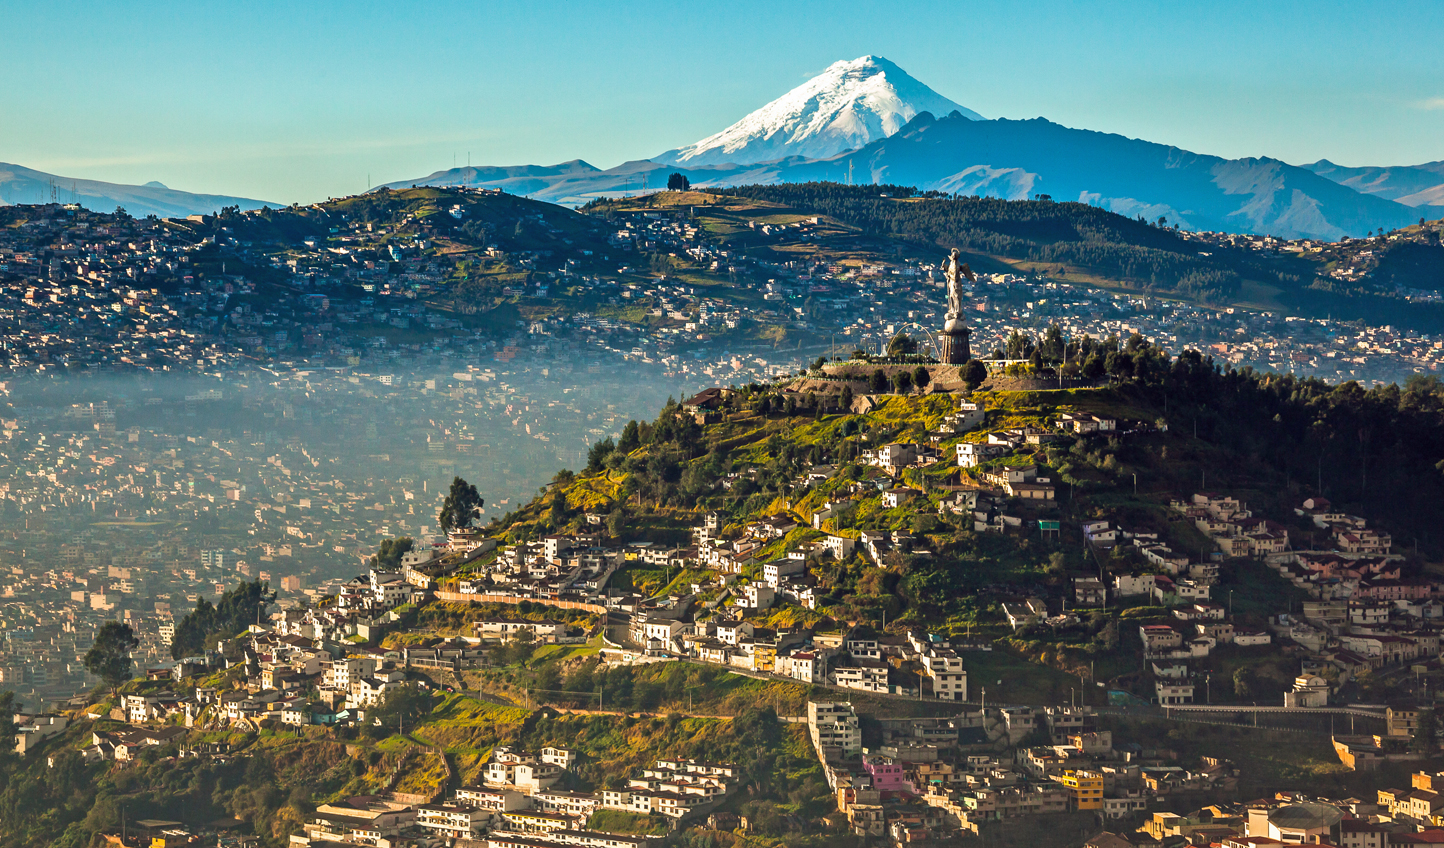 Quito - a lively and lovely South American city